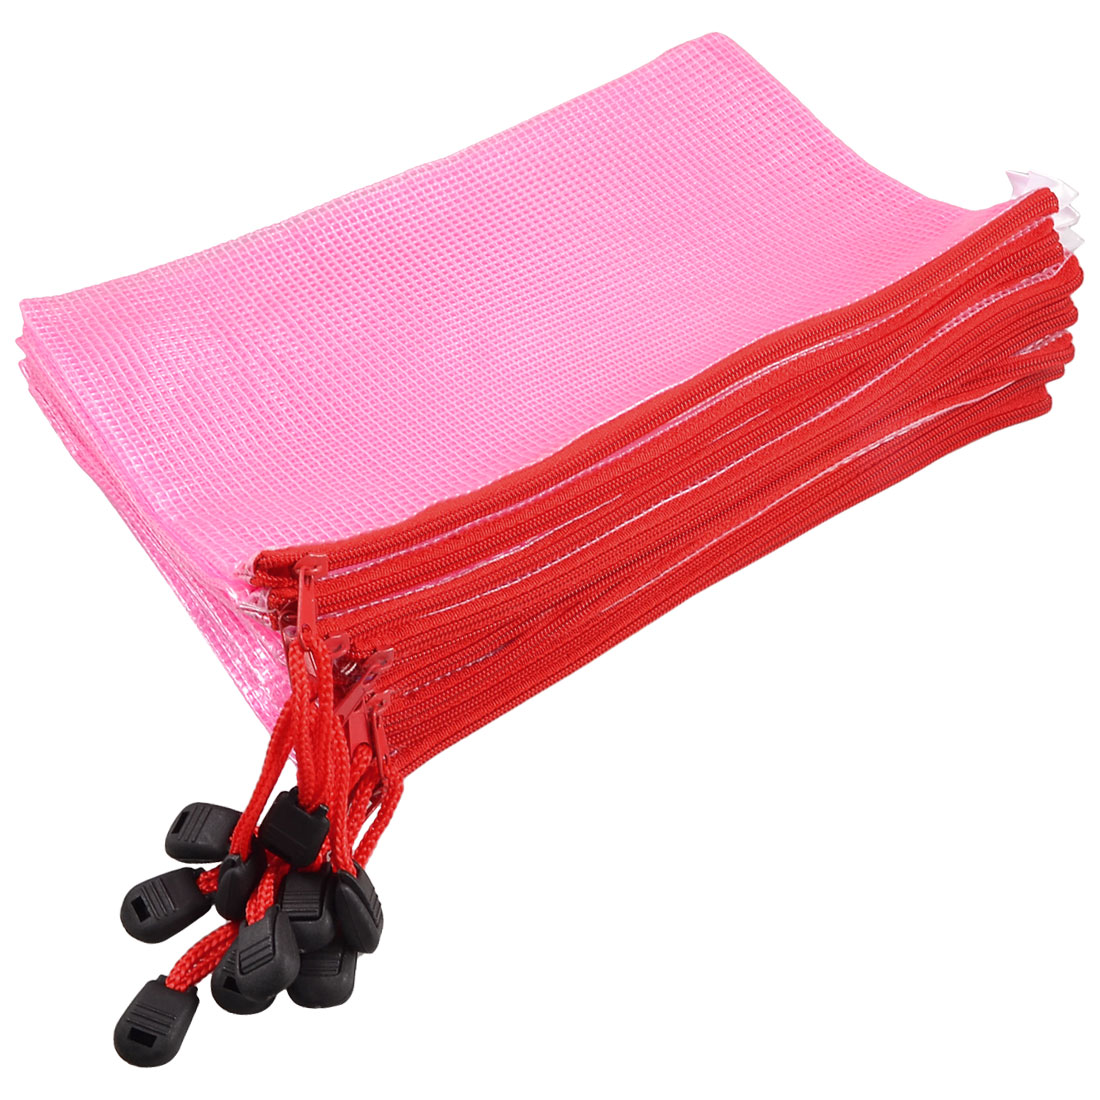 Netting Decor Surface A5 Document File Holder Zip up Bag Pink w Strap 10 Pcs